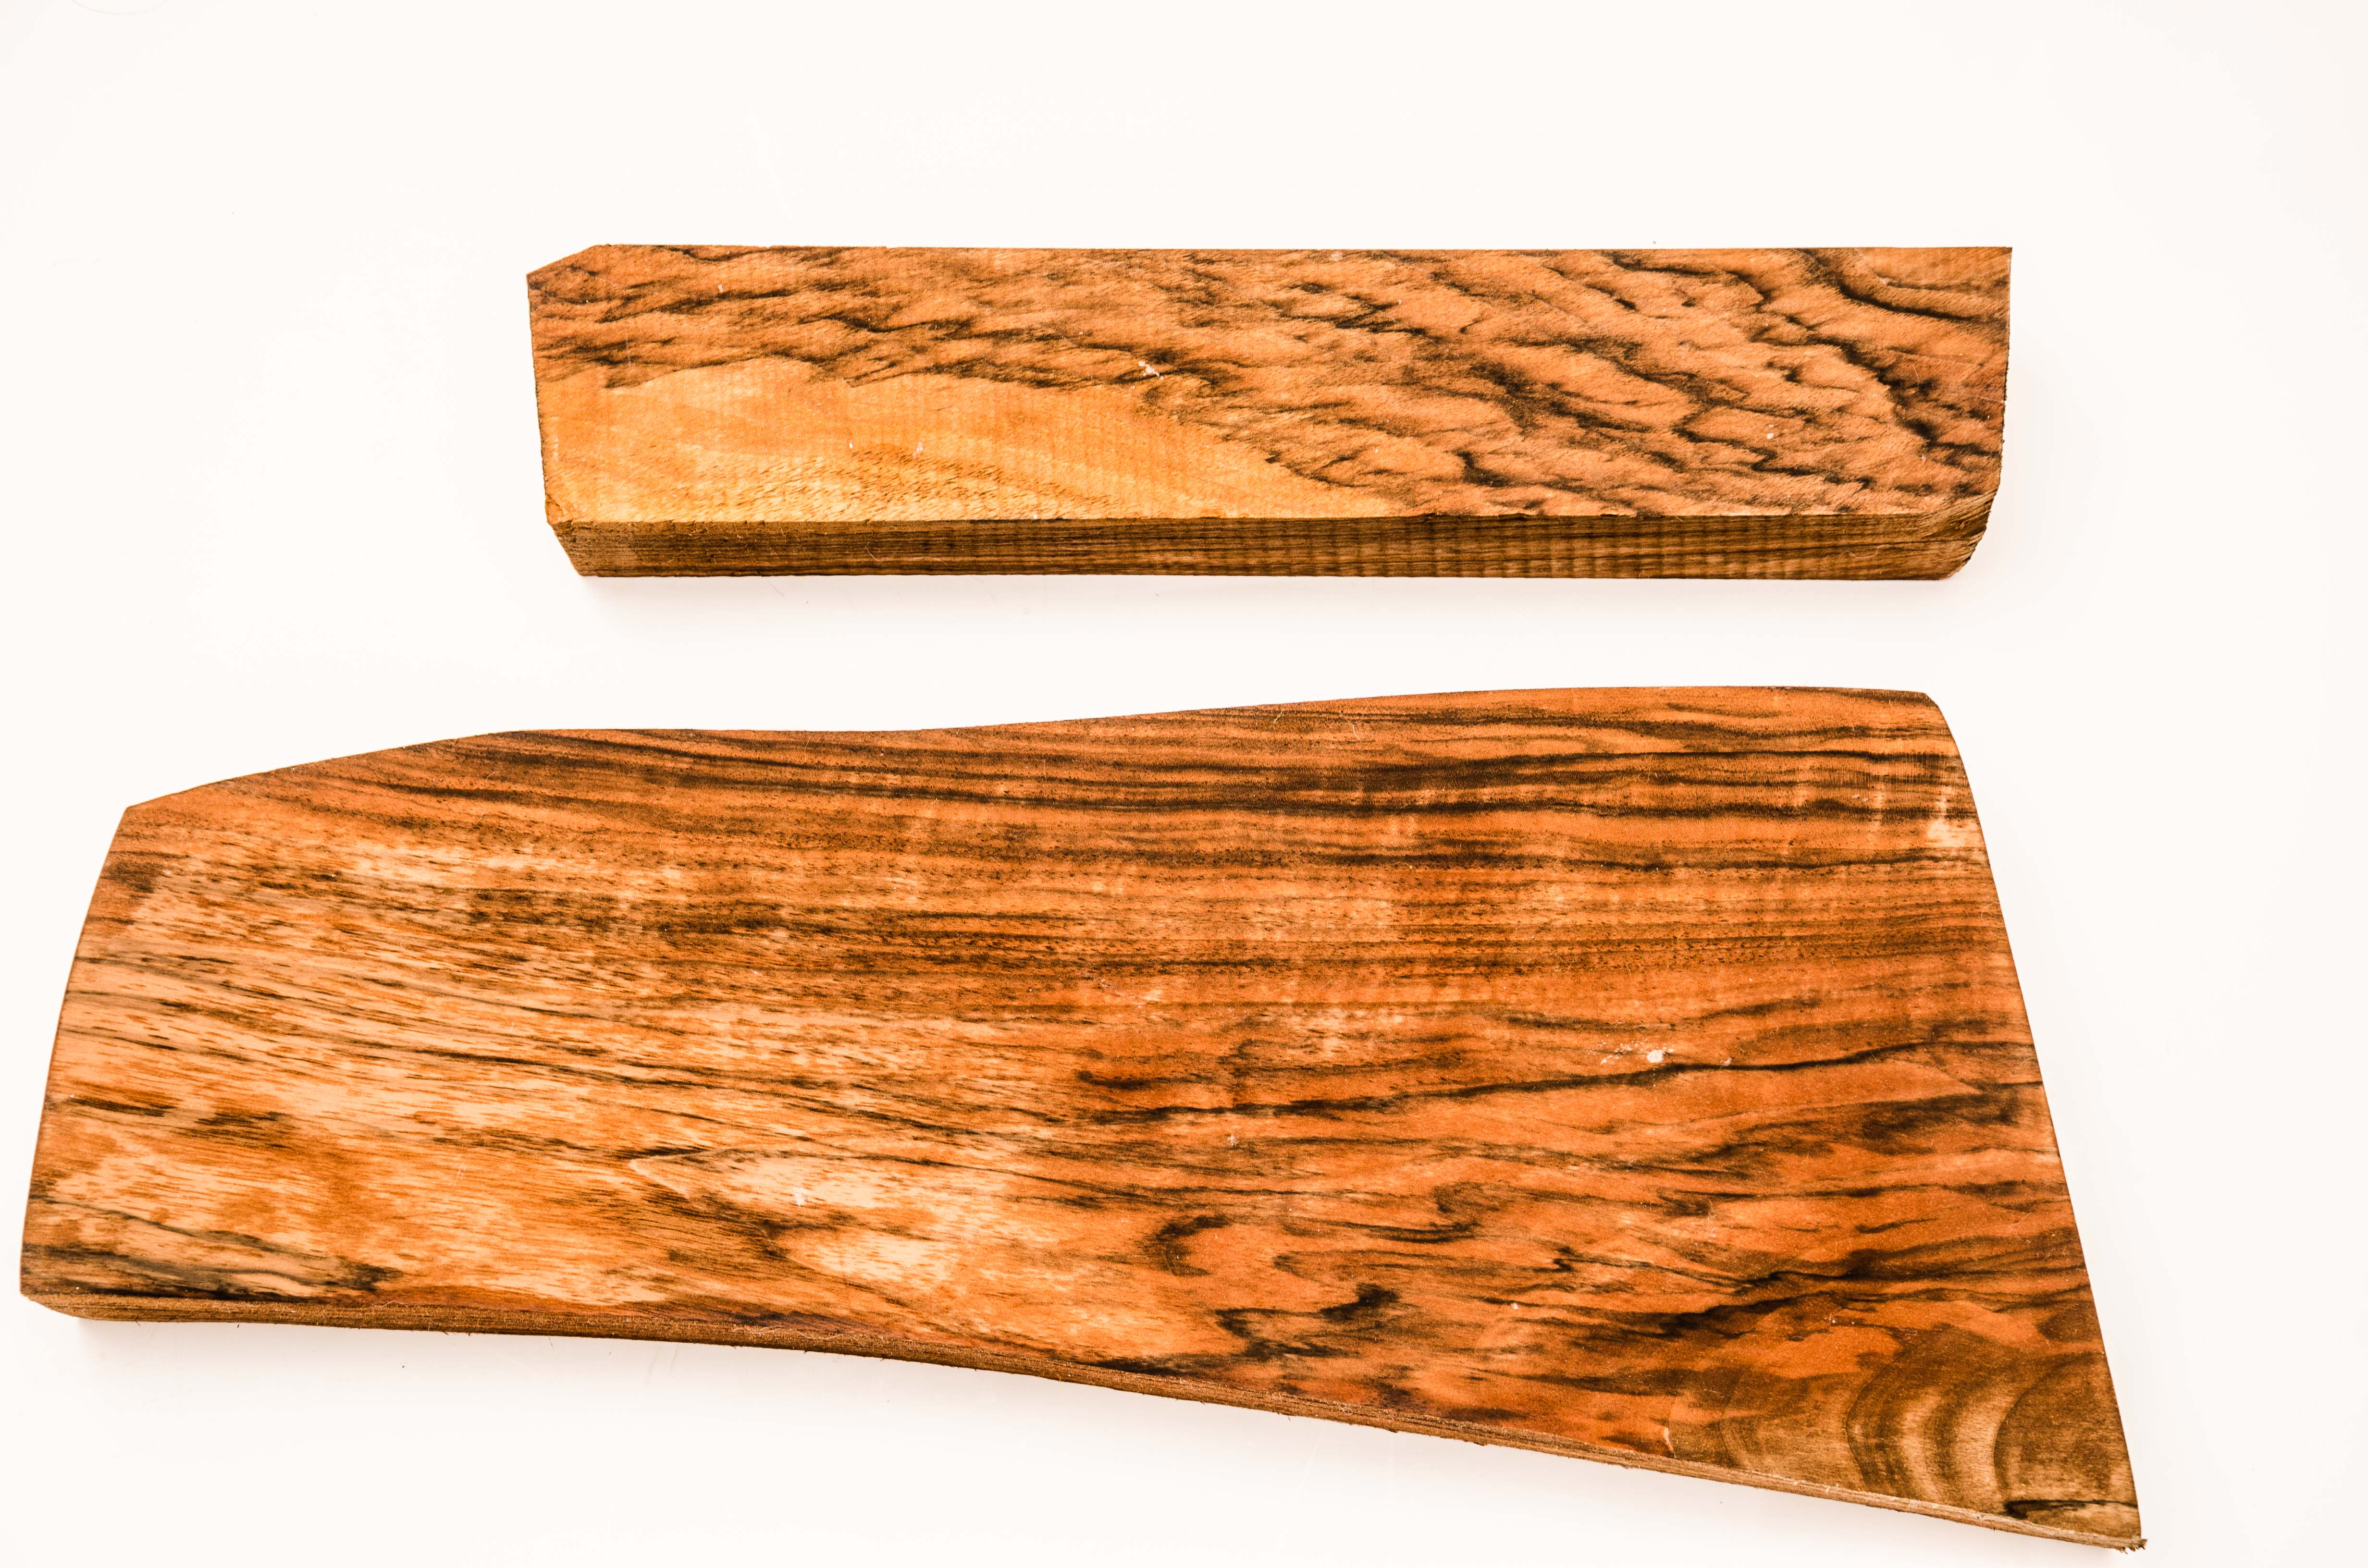 walnut_stock_blanks_for_guns_and_rifles-0370